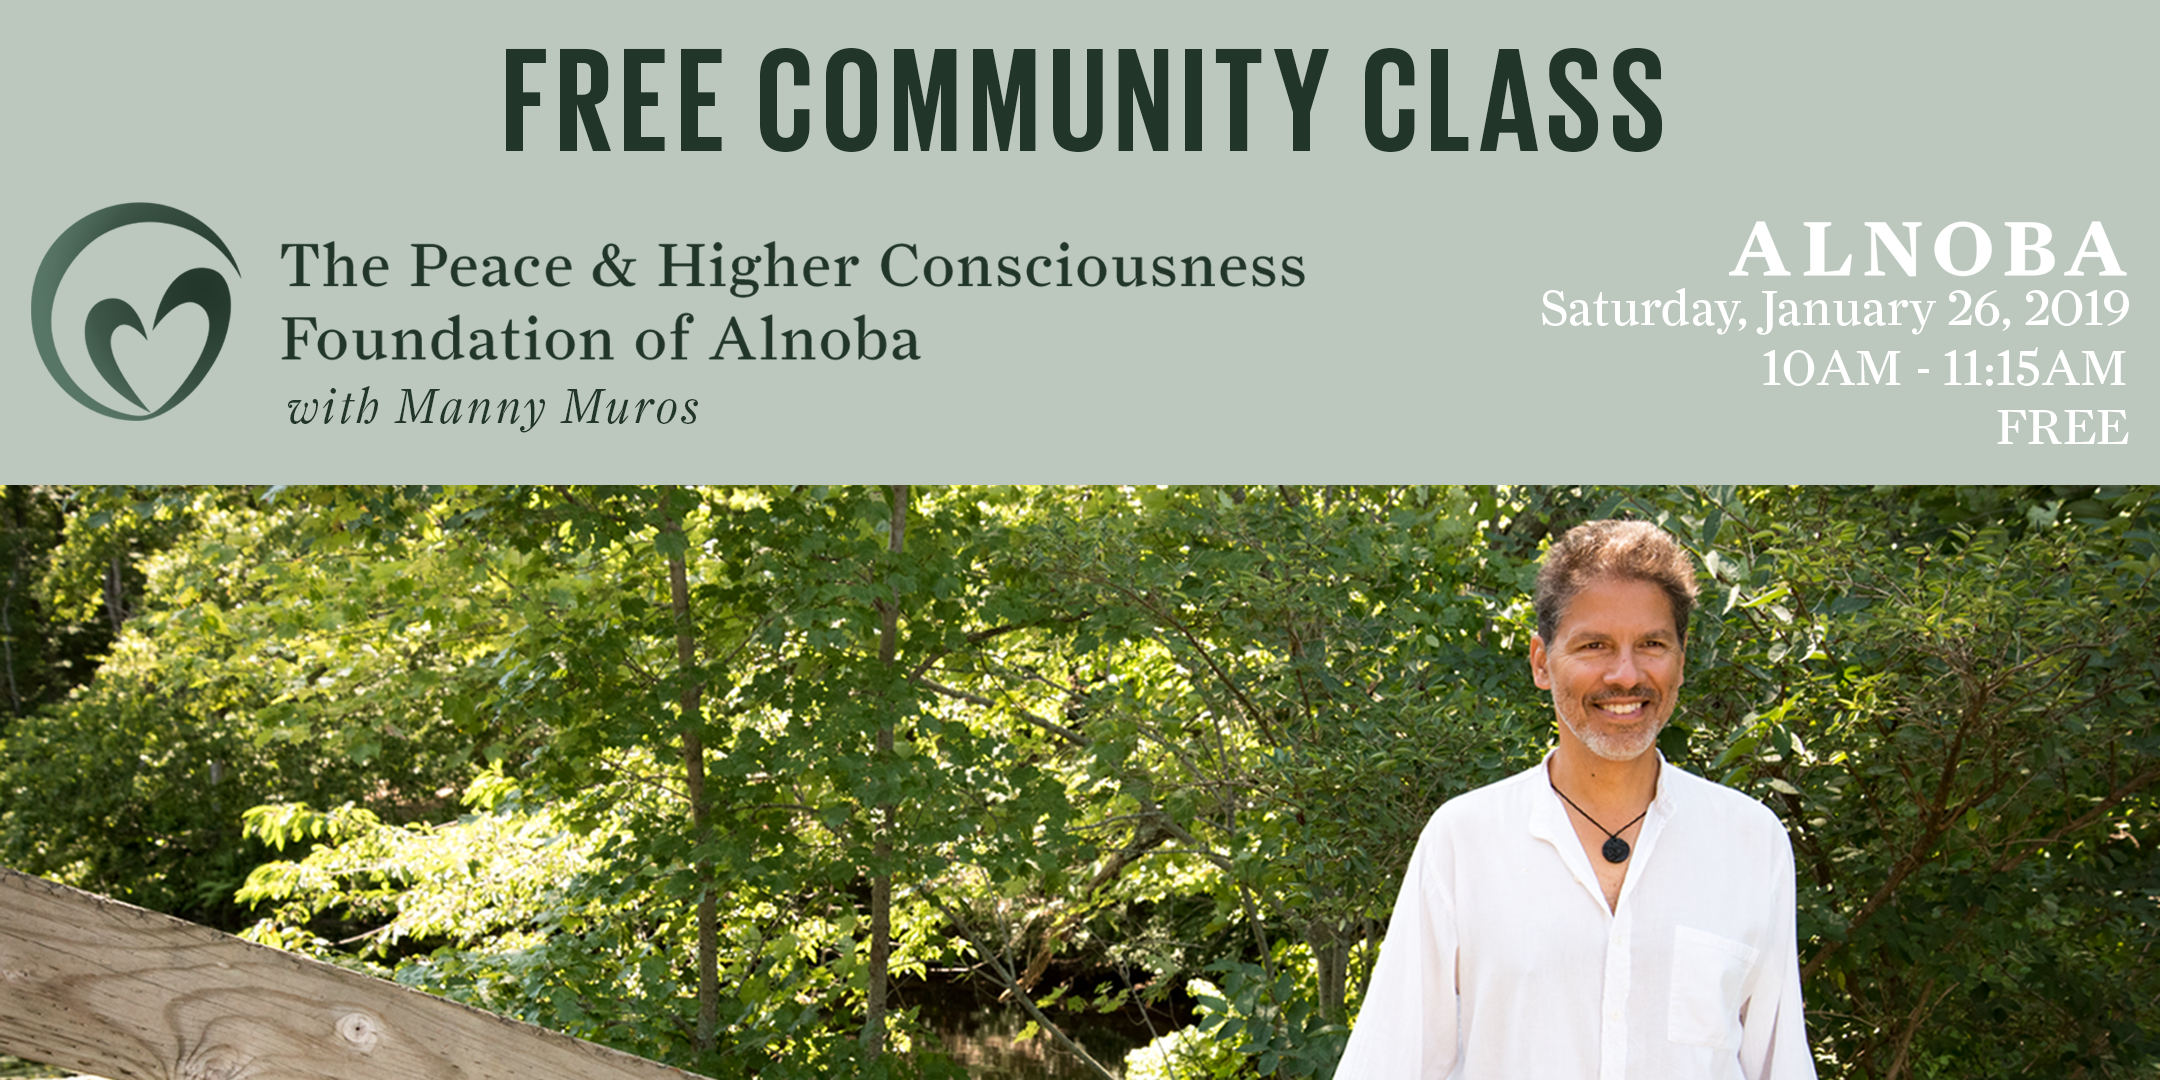 FREE Community Class with Manny Muros